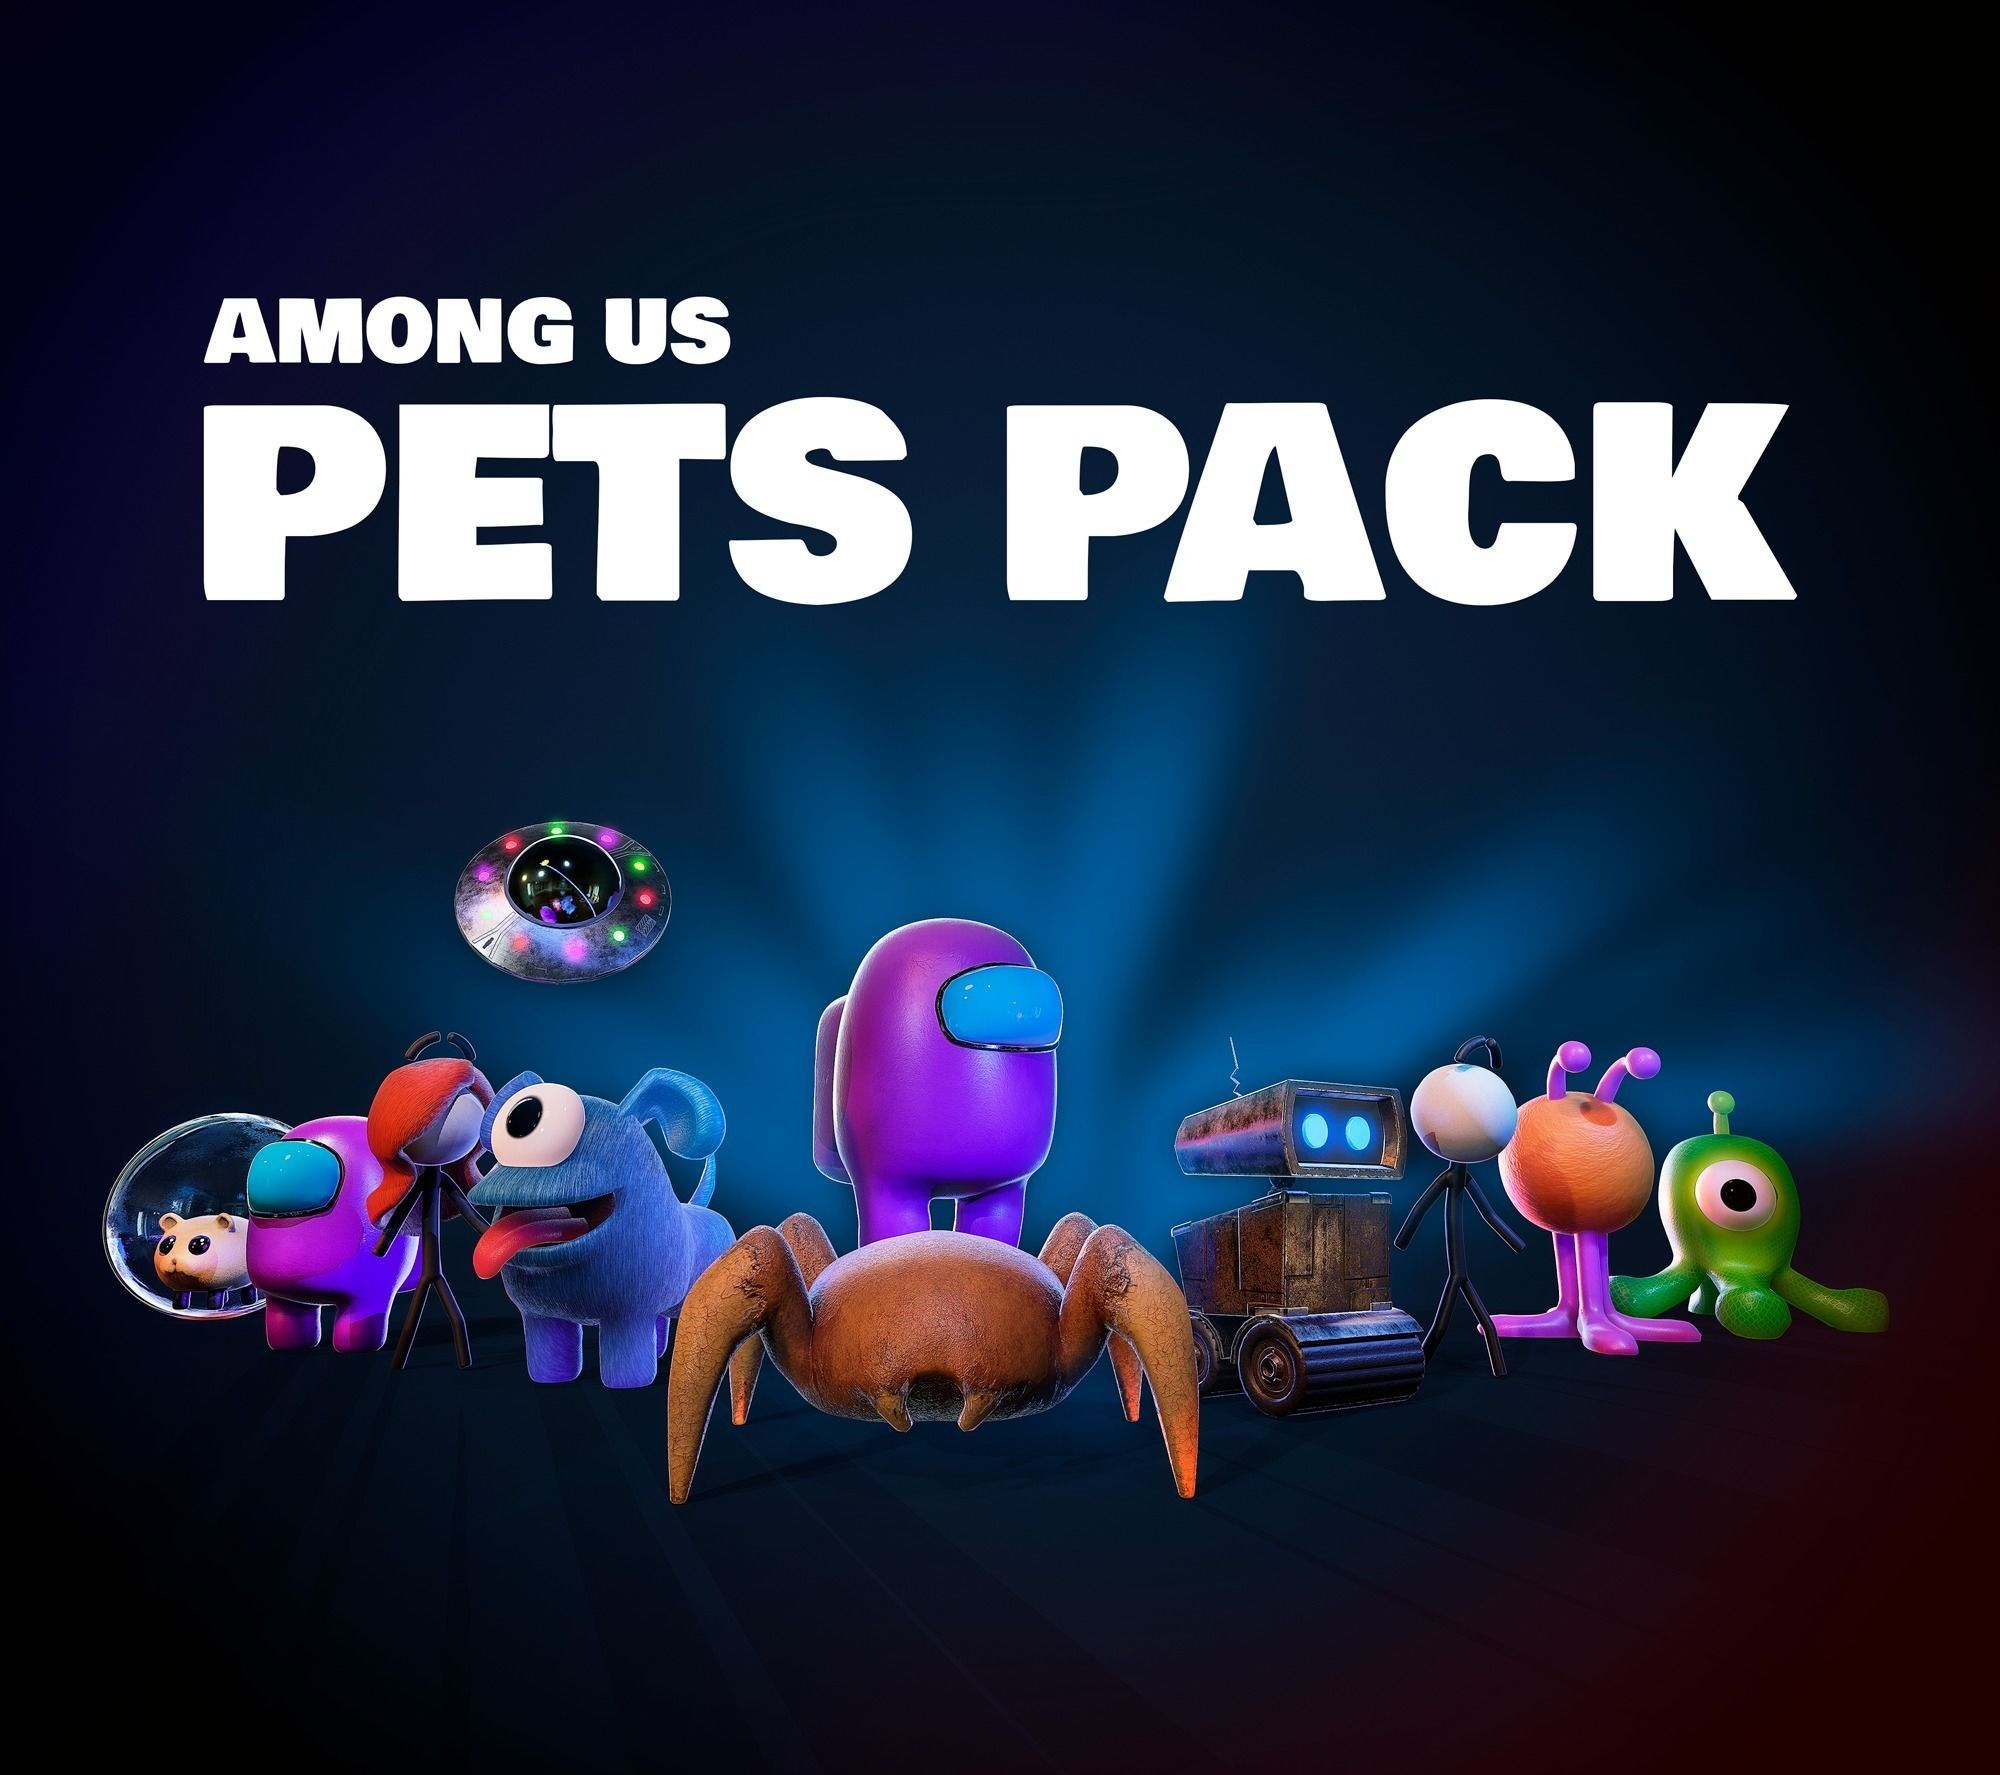 Among Us Pets Pack